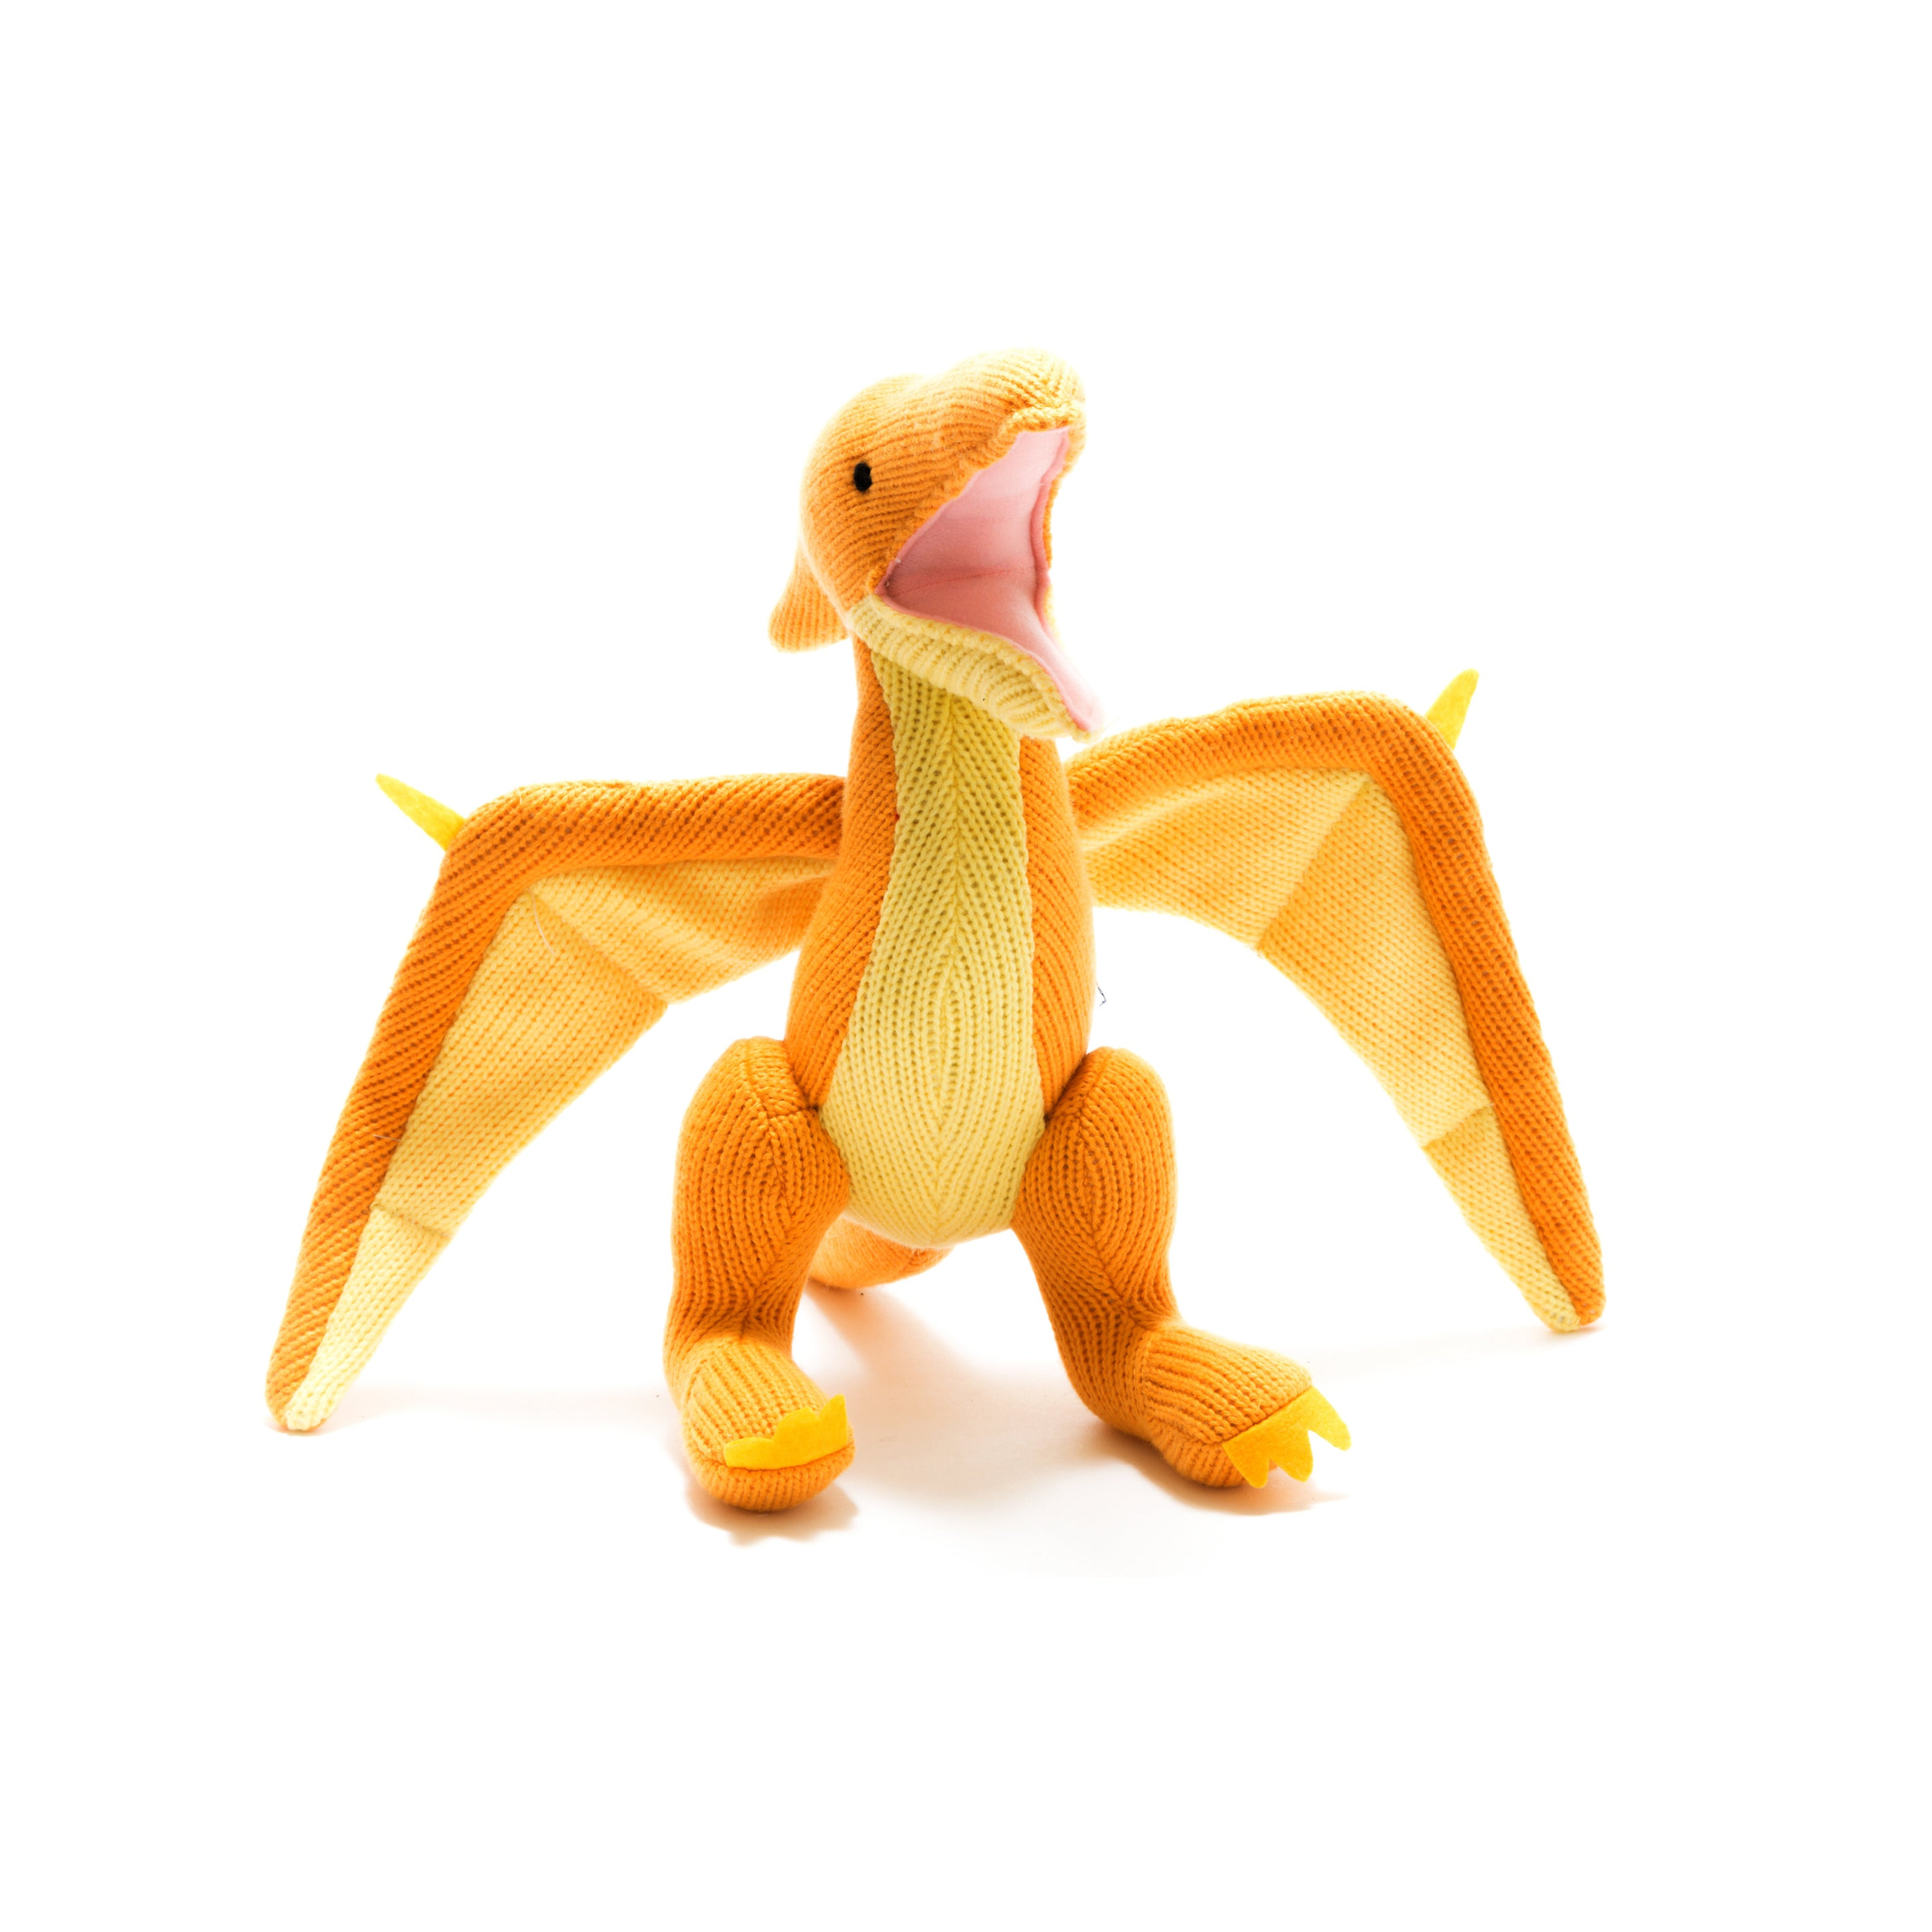 Knitted Orange/Yellow Pterodactyl Toy